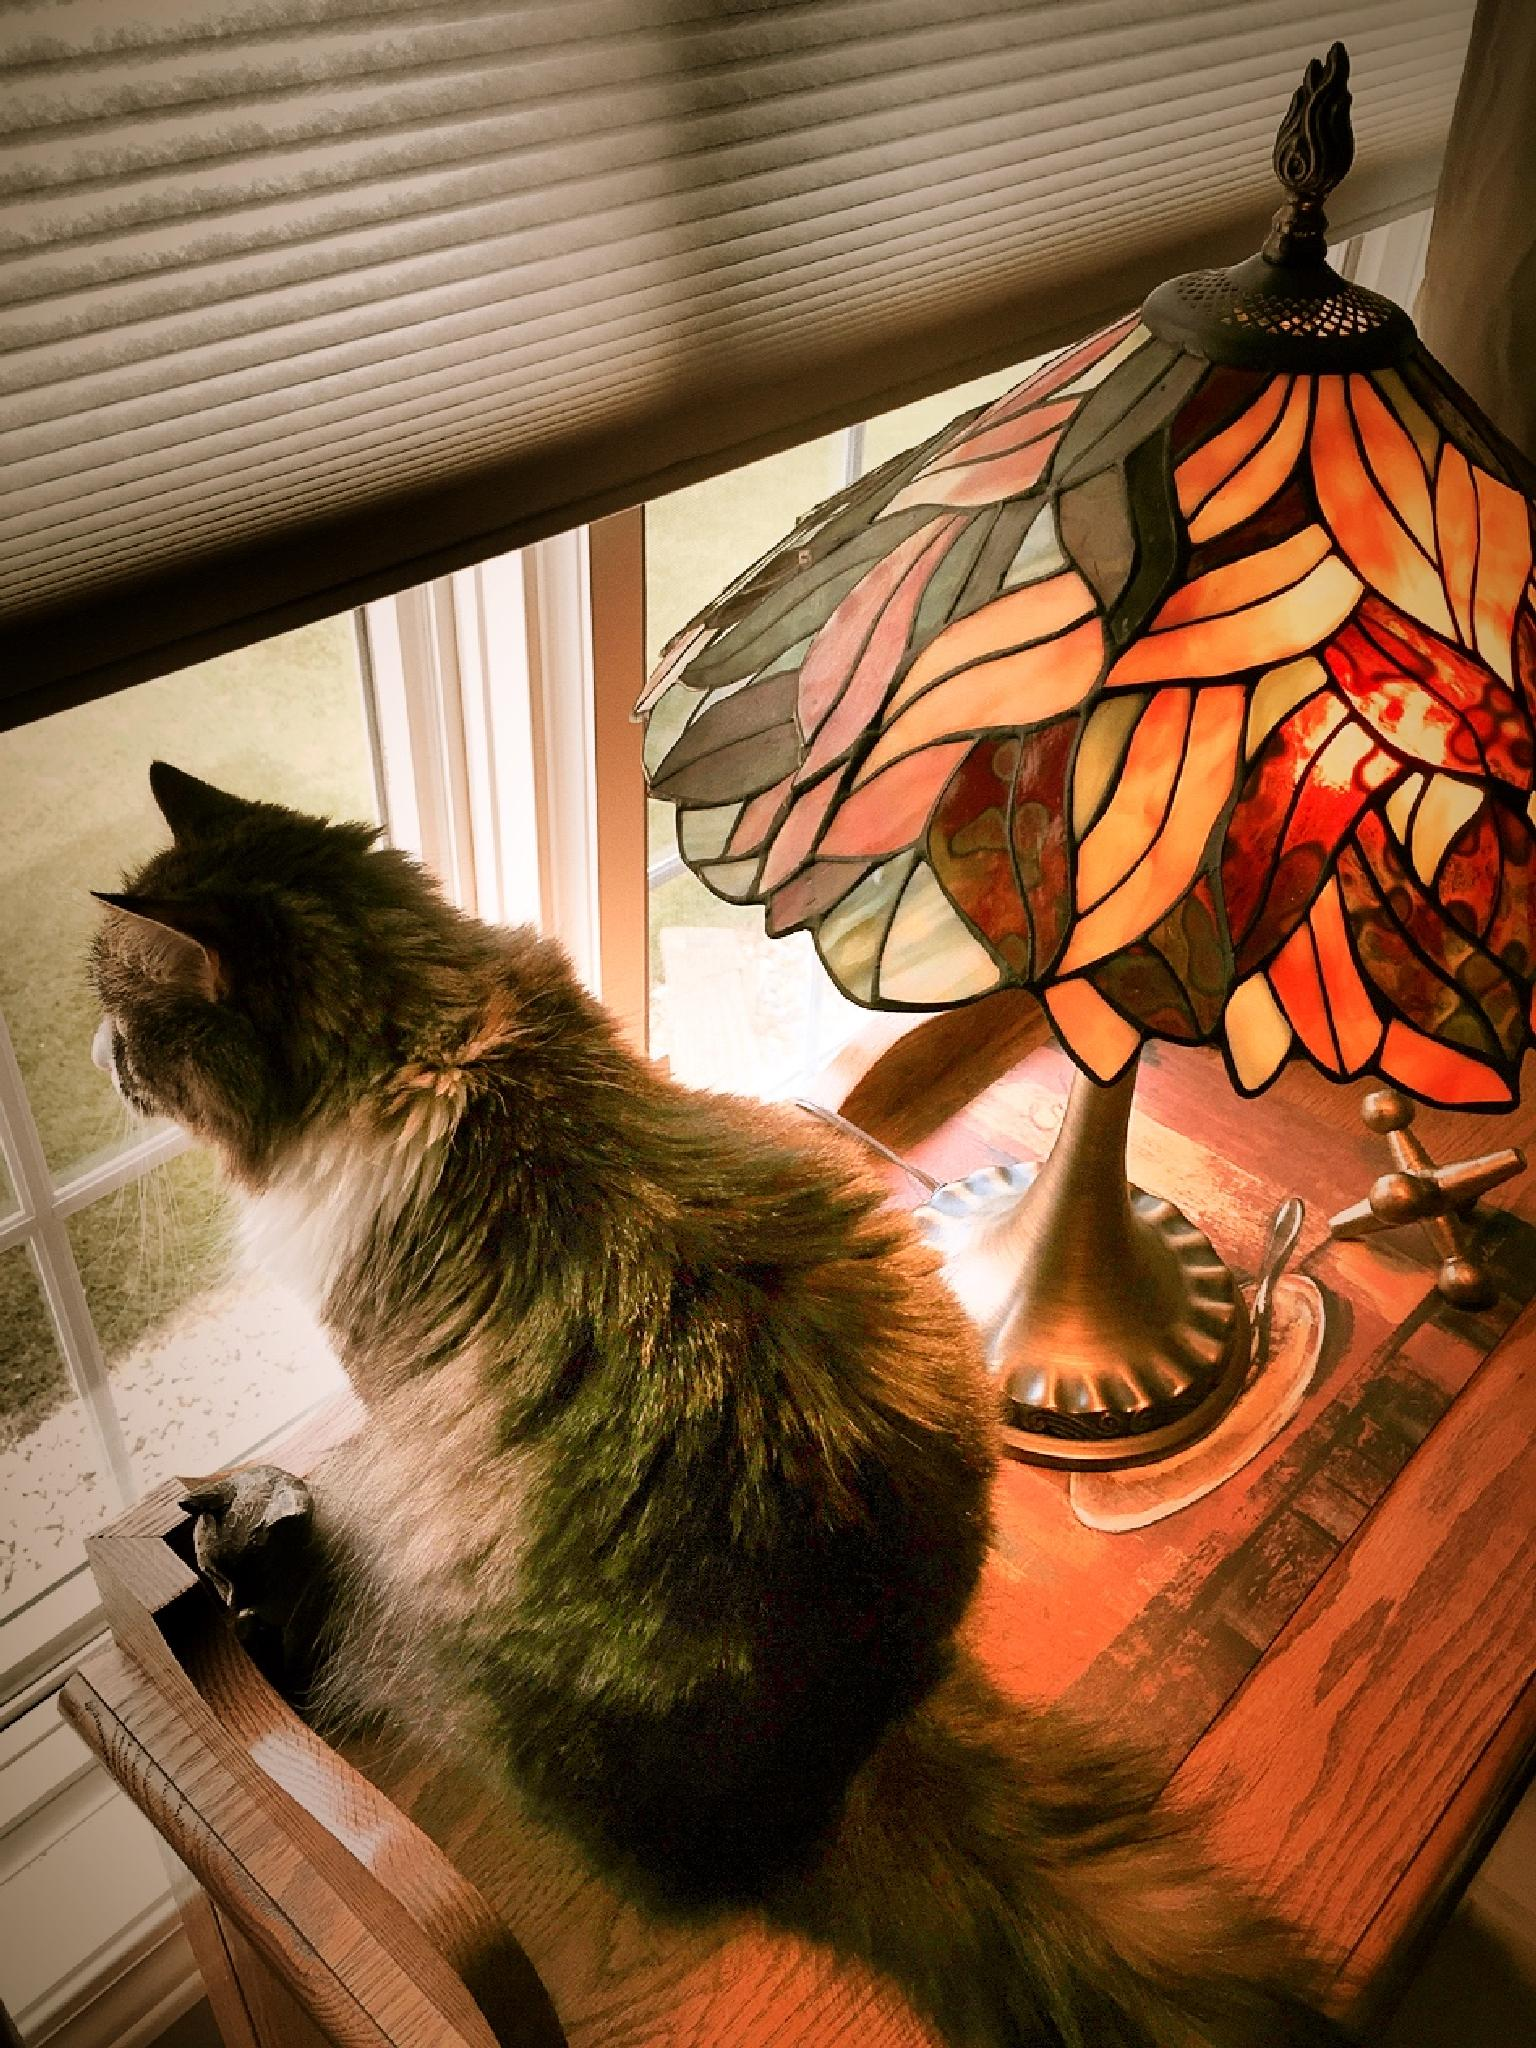 My Watch Cat by Susan Wood